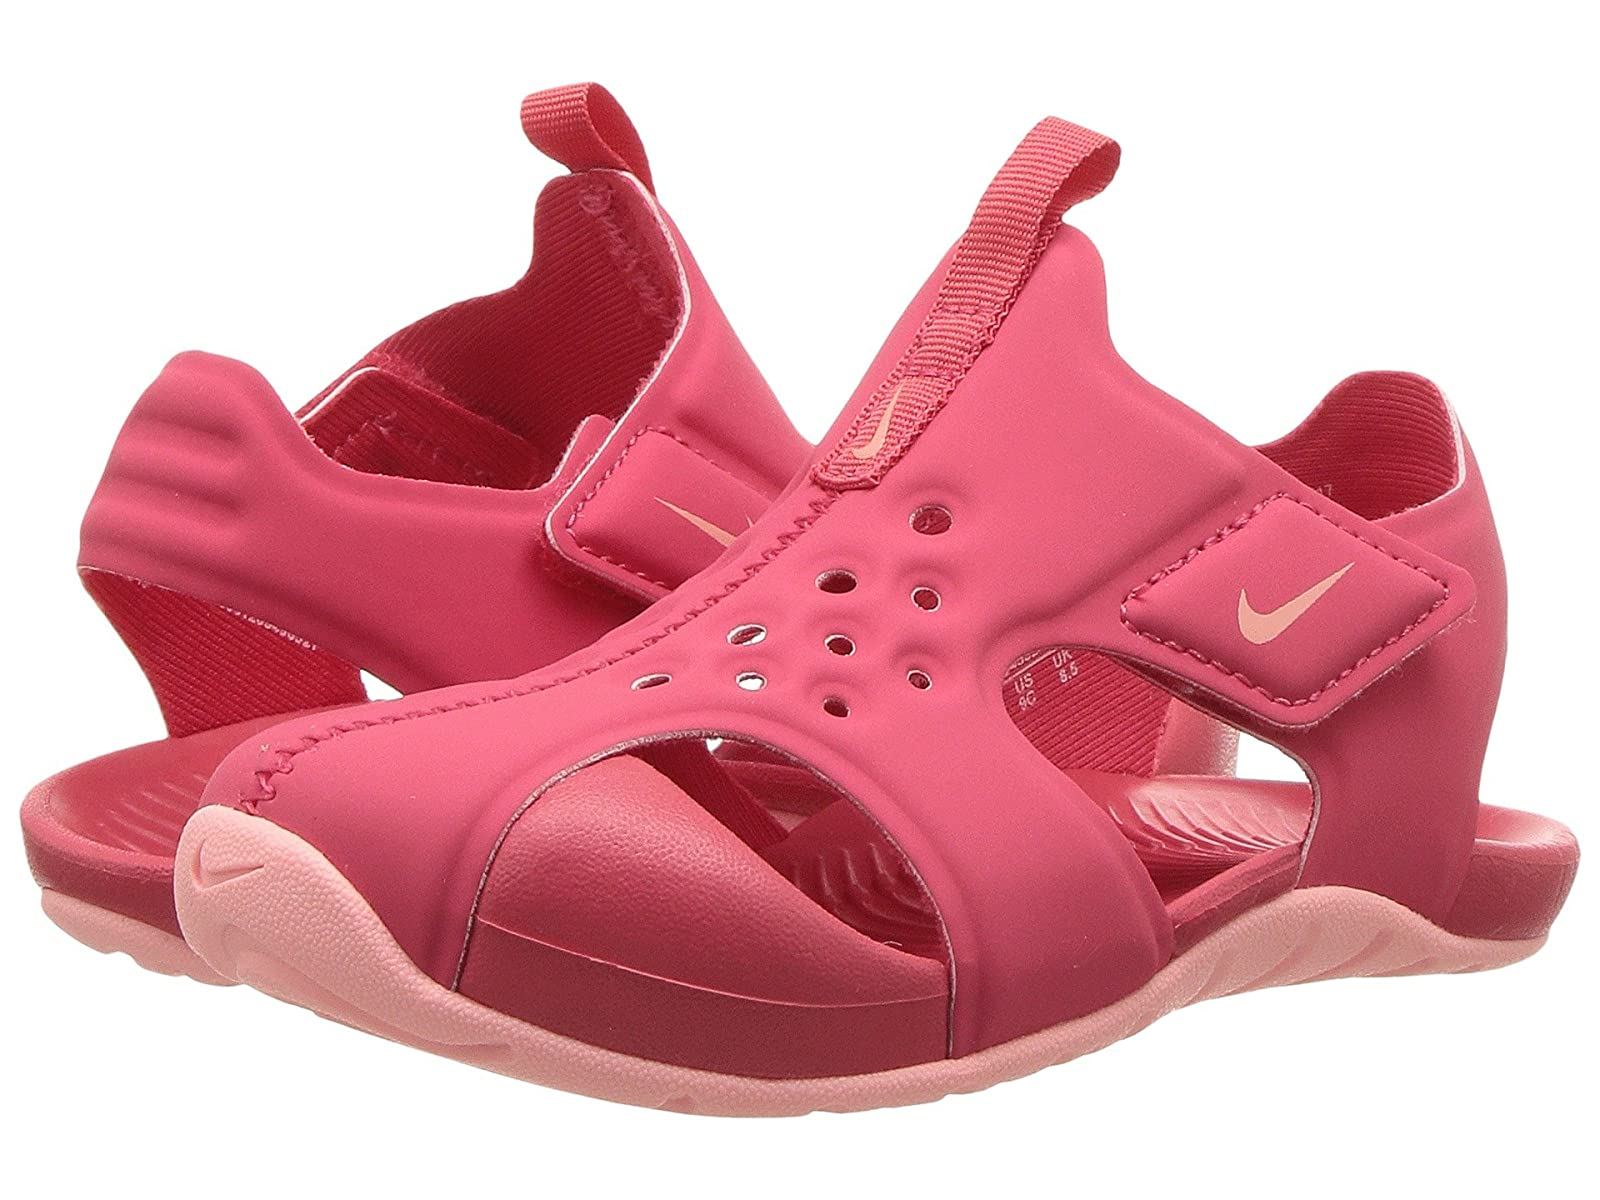 Nike Kids Sunray Protect 2 (Infant/Toddler)Atmospheric grades have affordable shoes